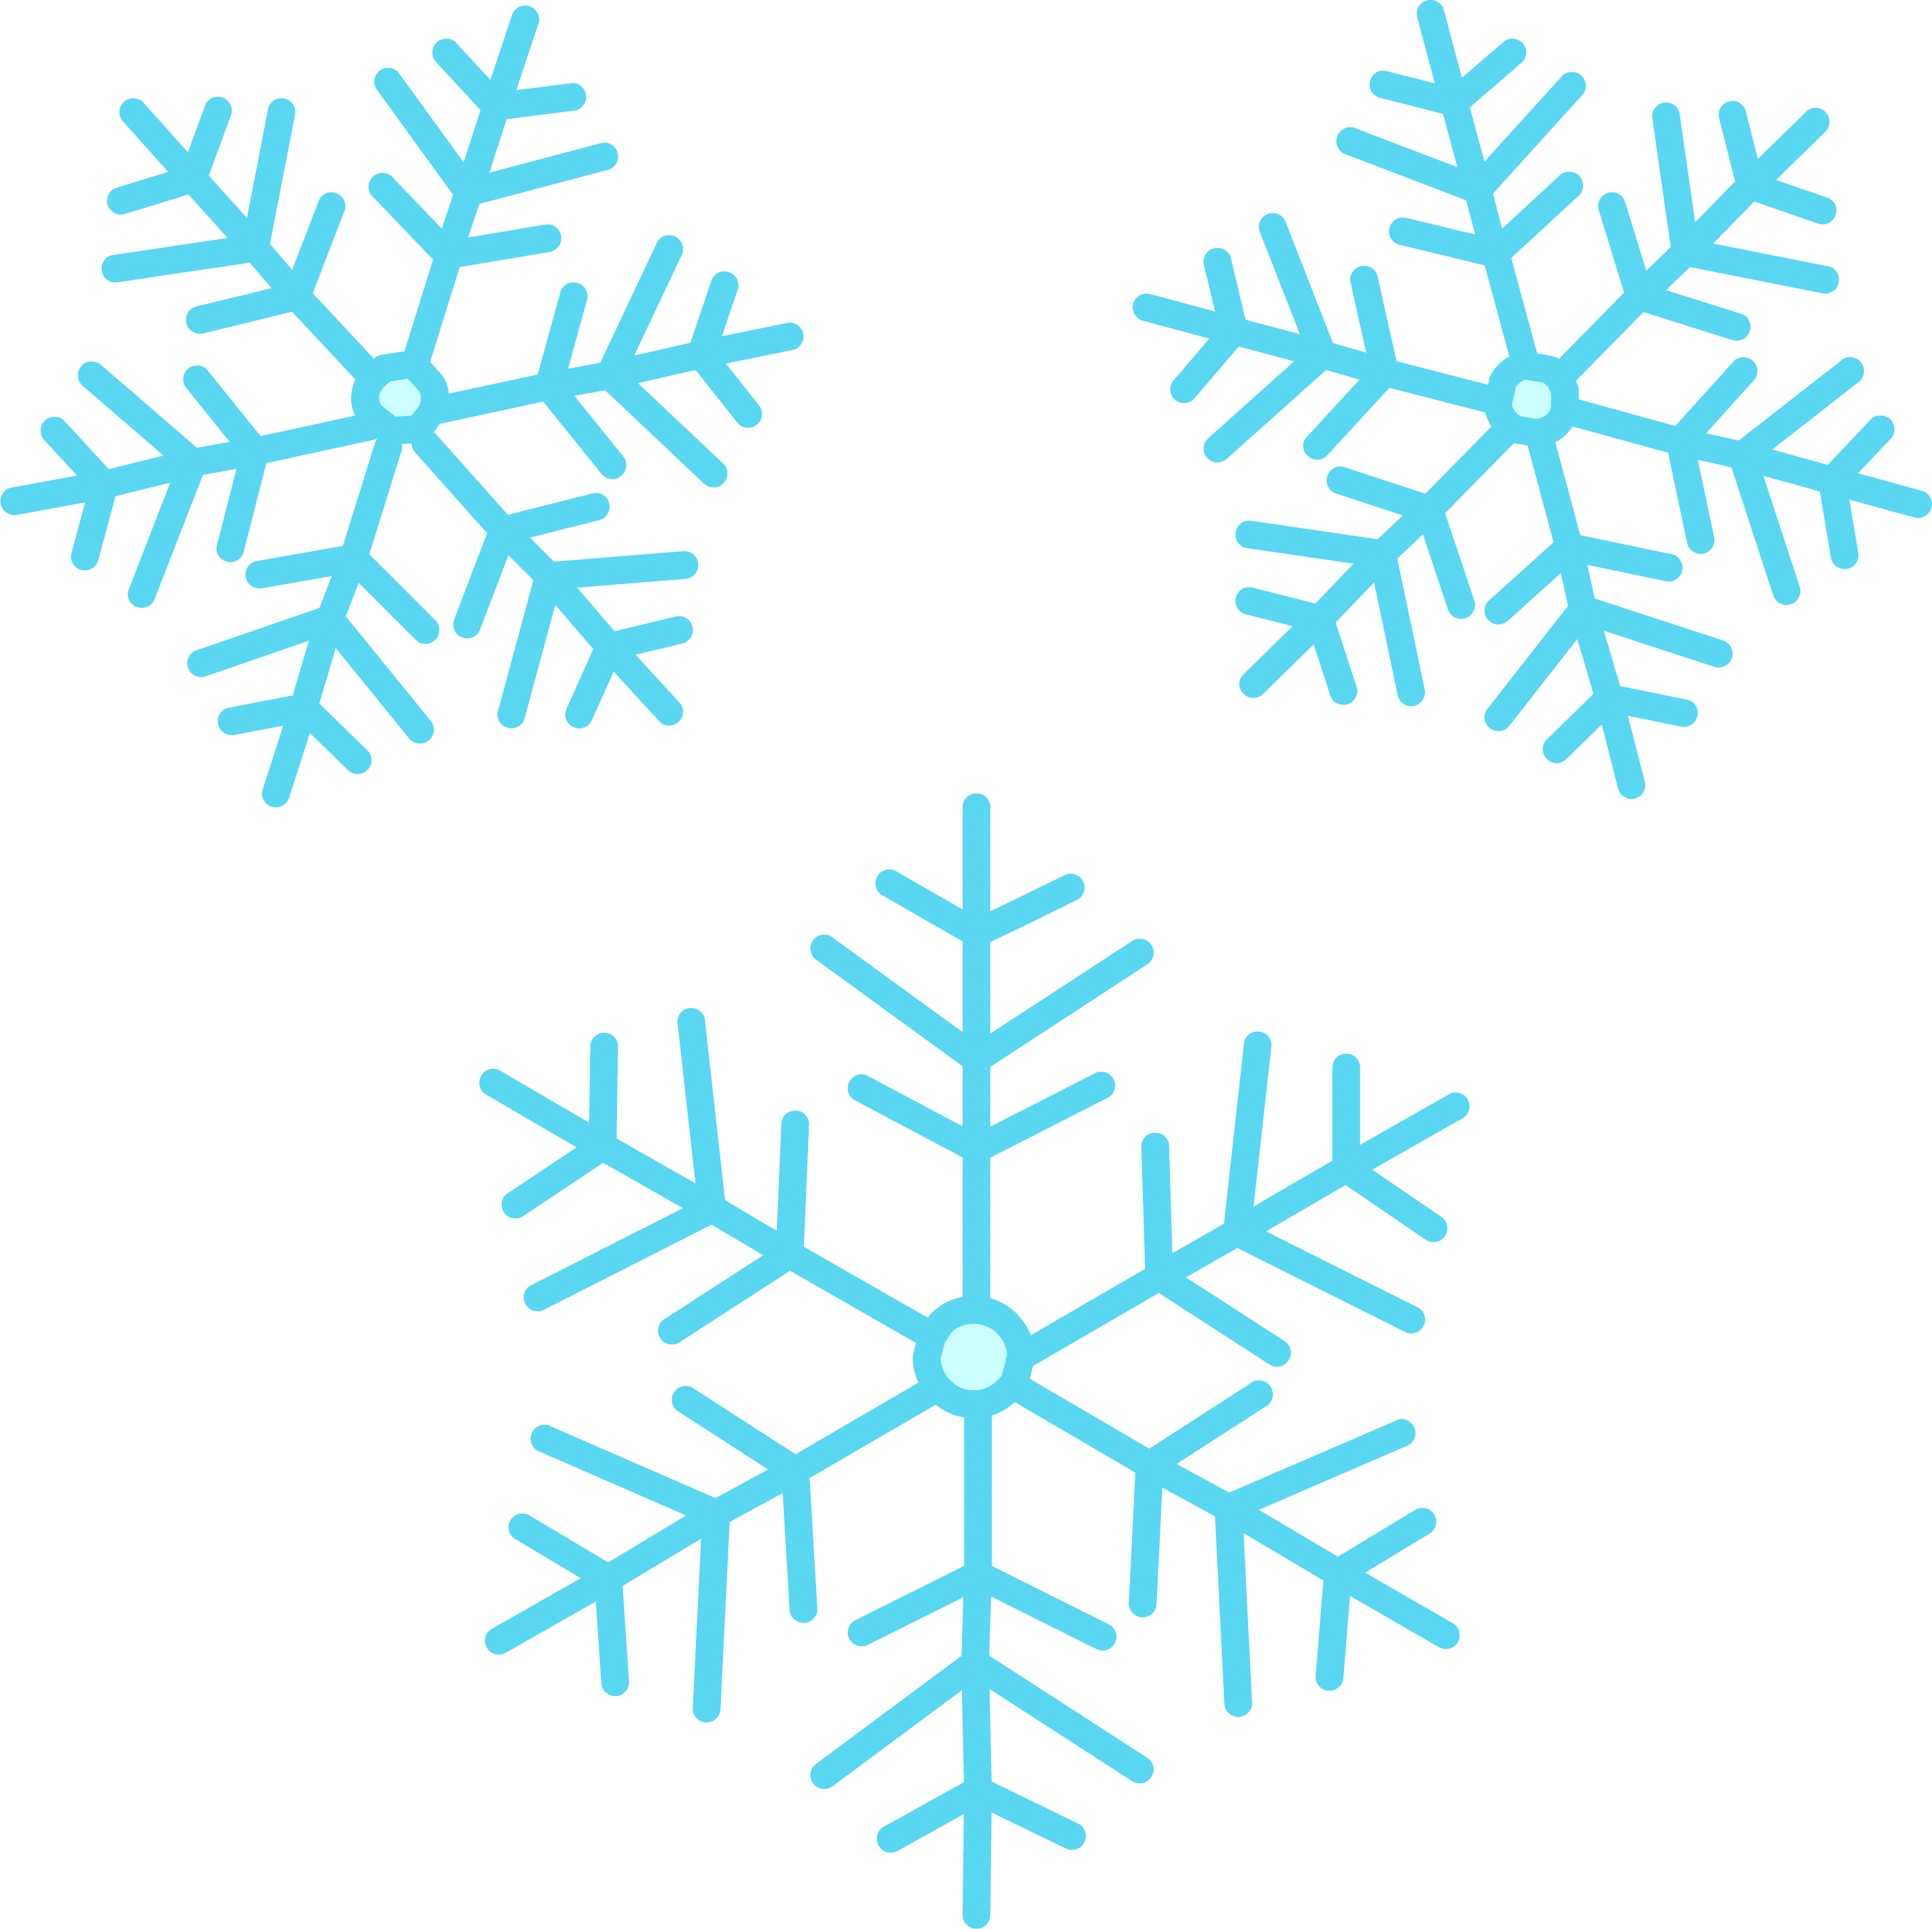 Free snowflake patterns clipart image transparent library Snowflake Clipart | jokingart.com image transparent library